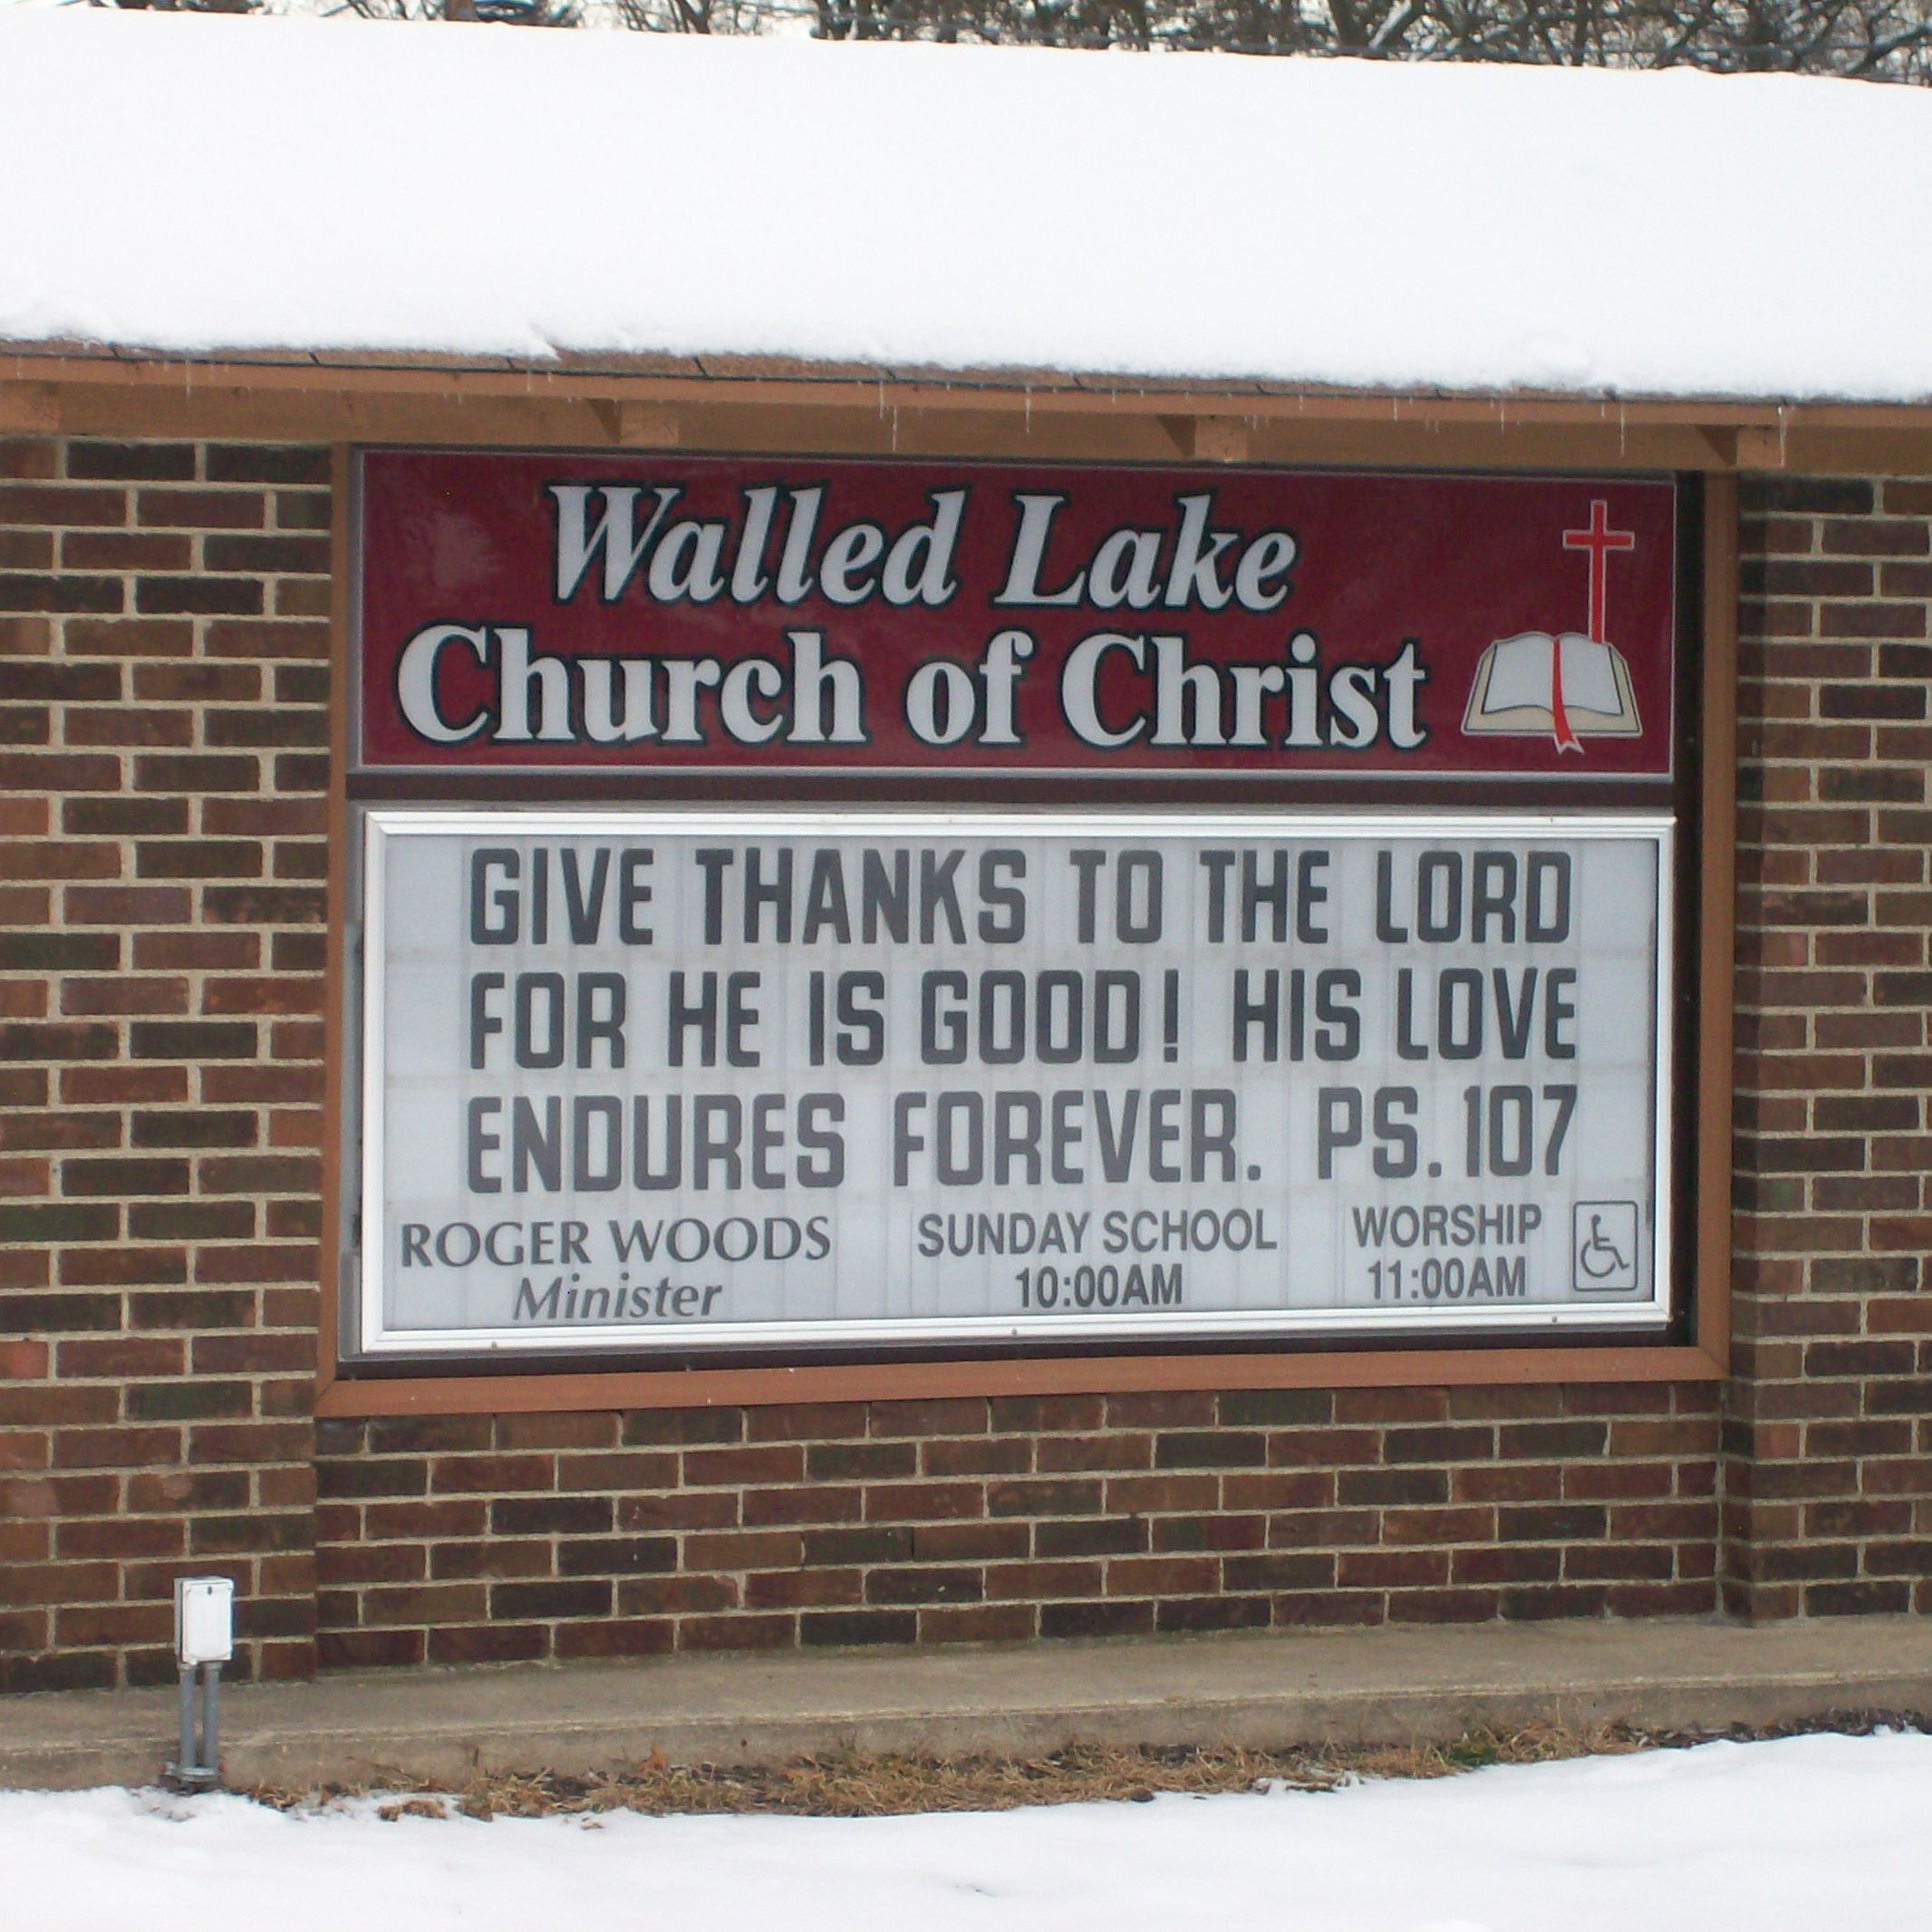 Walled Lake Church of Christ